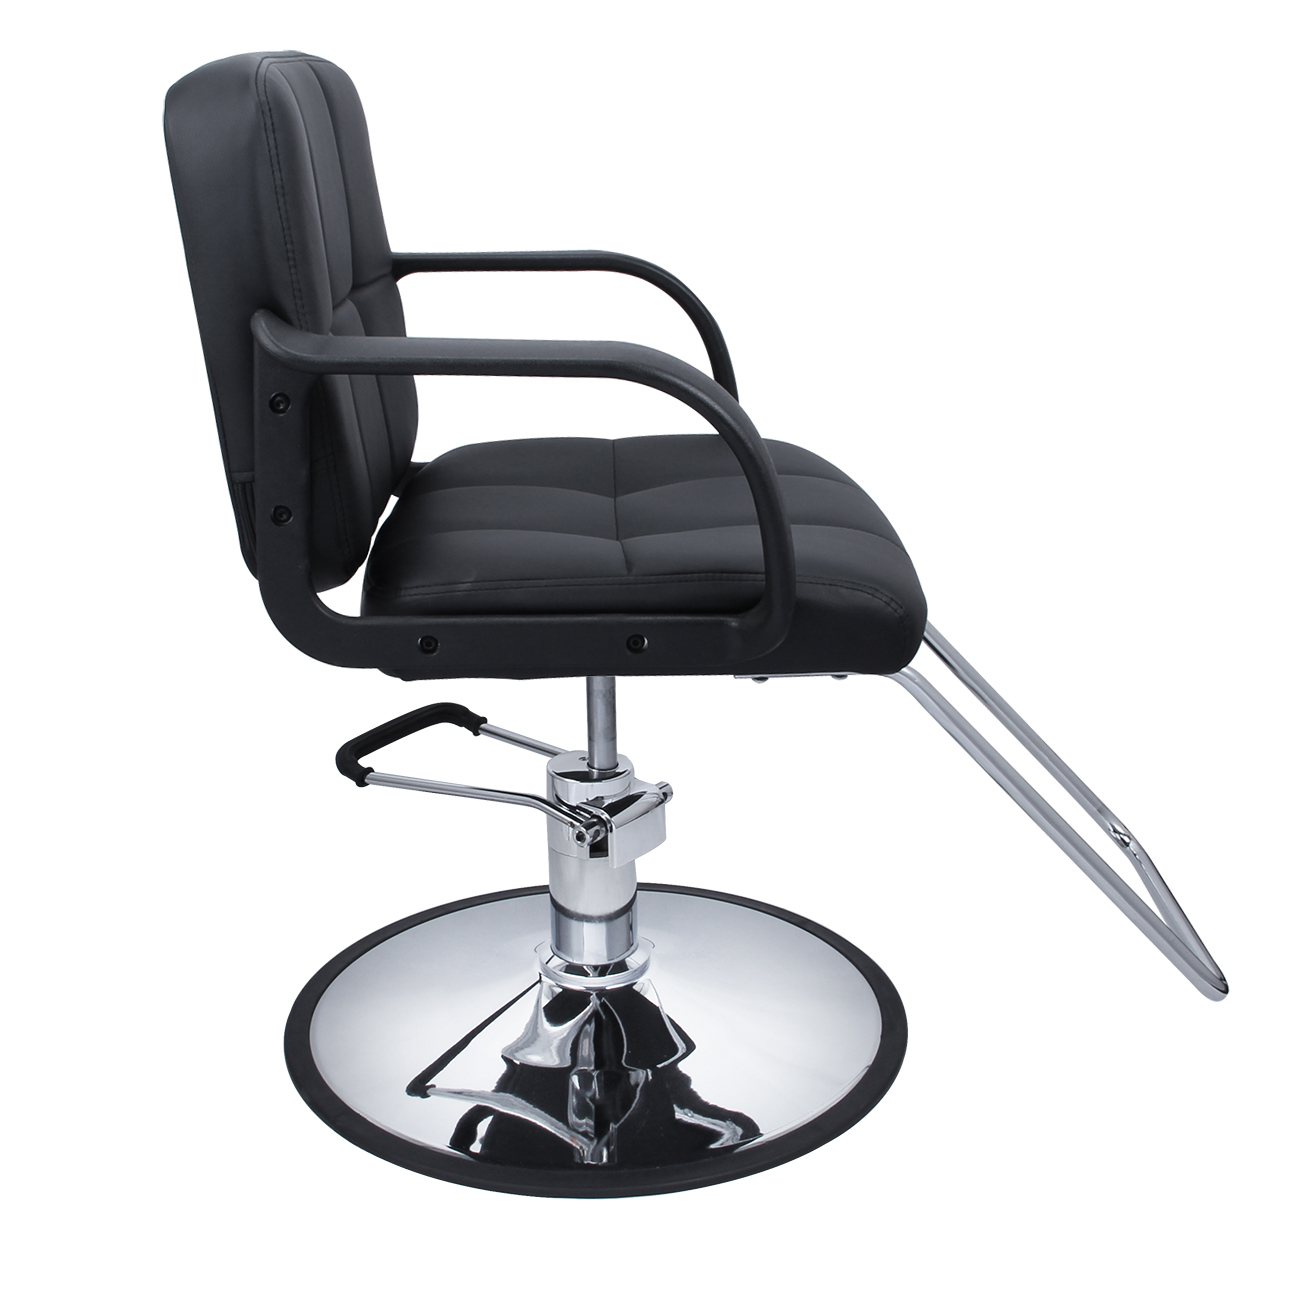 electric hydraulic hair styling chairs folding outdoor argos professional black barber chair